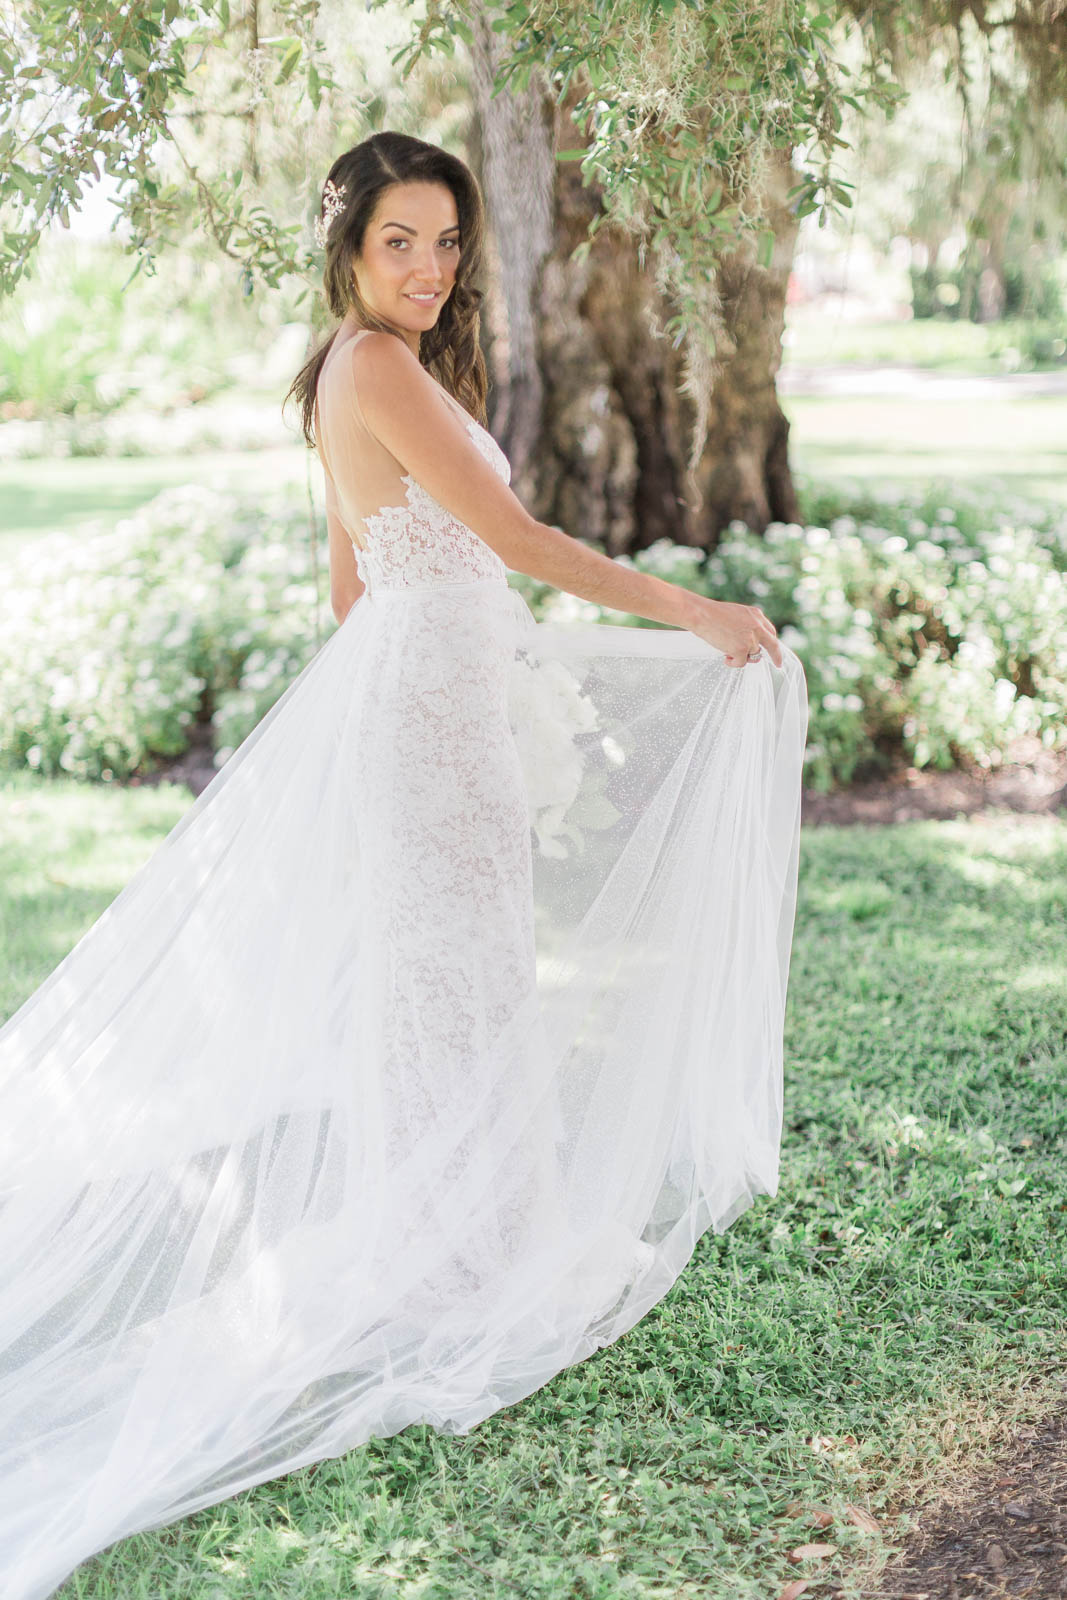 Bride in bridal gown with sheer overlay